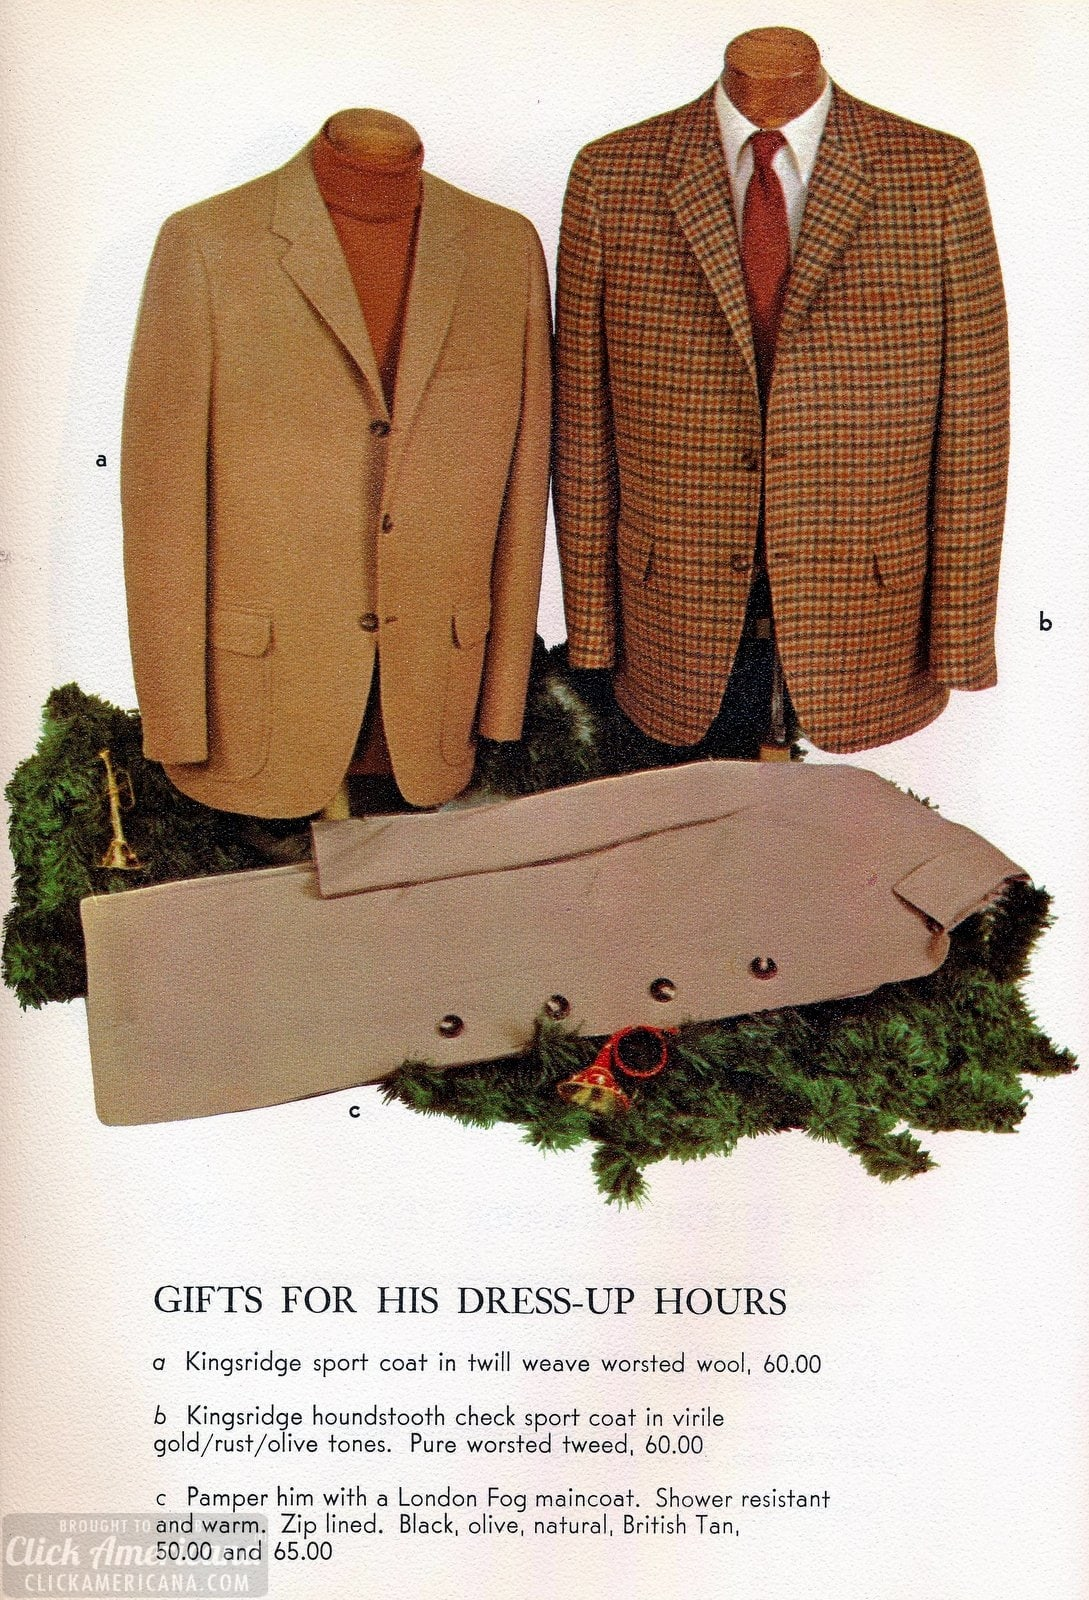 Sports coats for men and London Fog maincoats